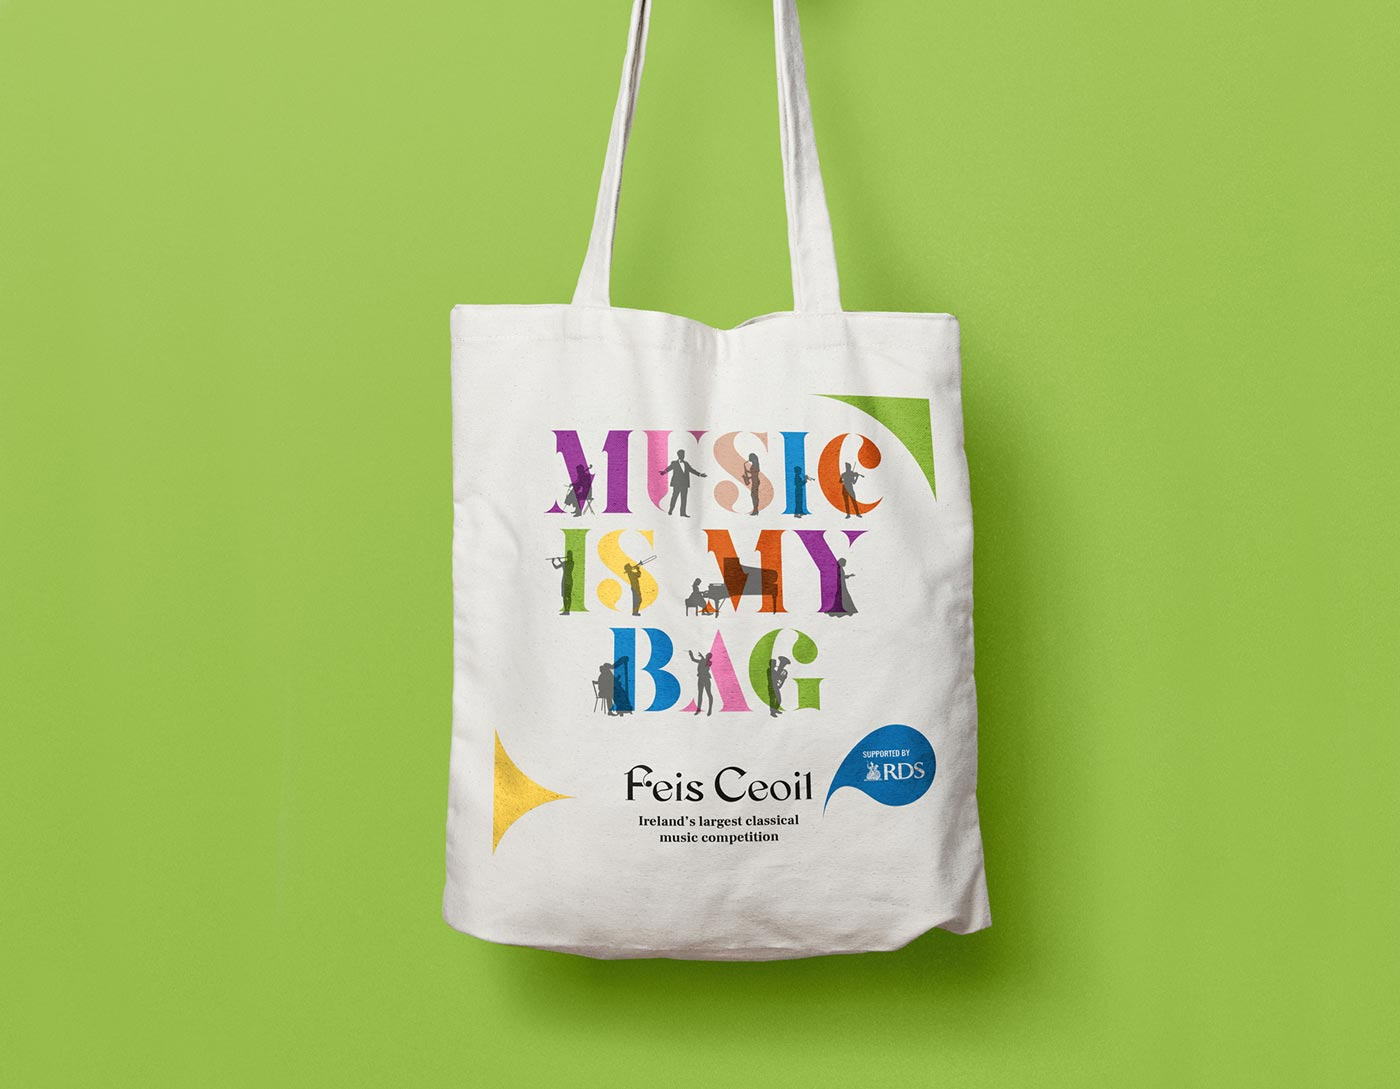 Feis Ceoil – Tote bag design by Marshall Light Studio